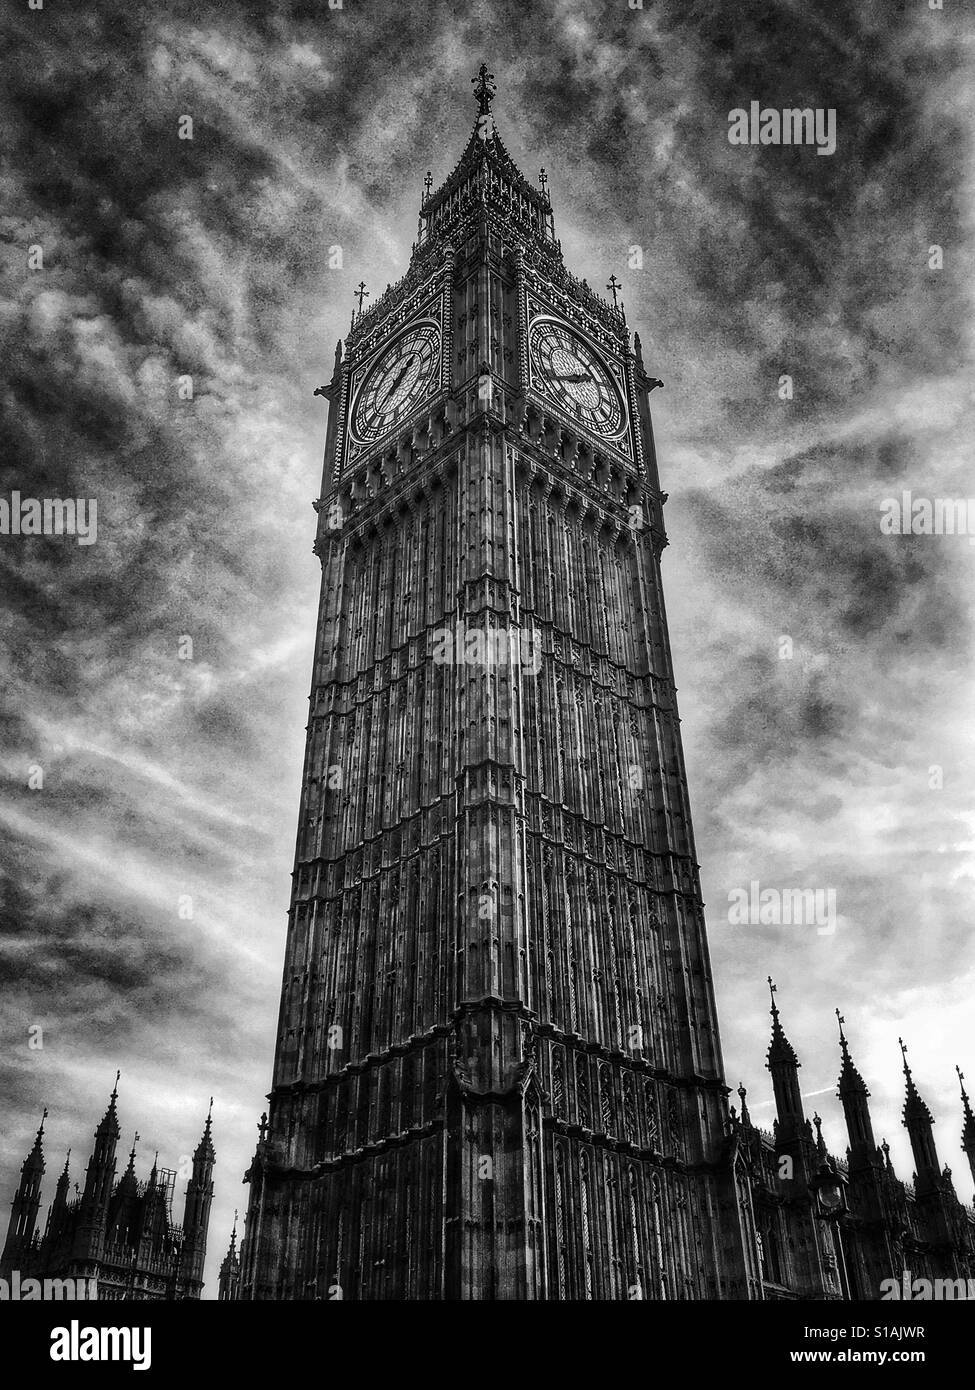 Black and white photo of Elizabeth Tower, more commonly known as Big Ben, under a dramatic sky in Westminster, London, - Stock Image